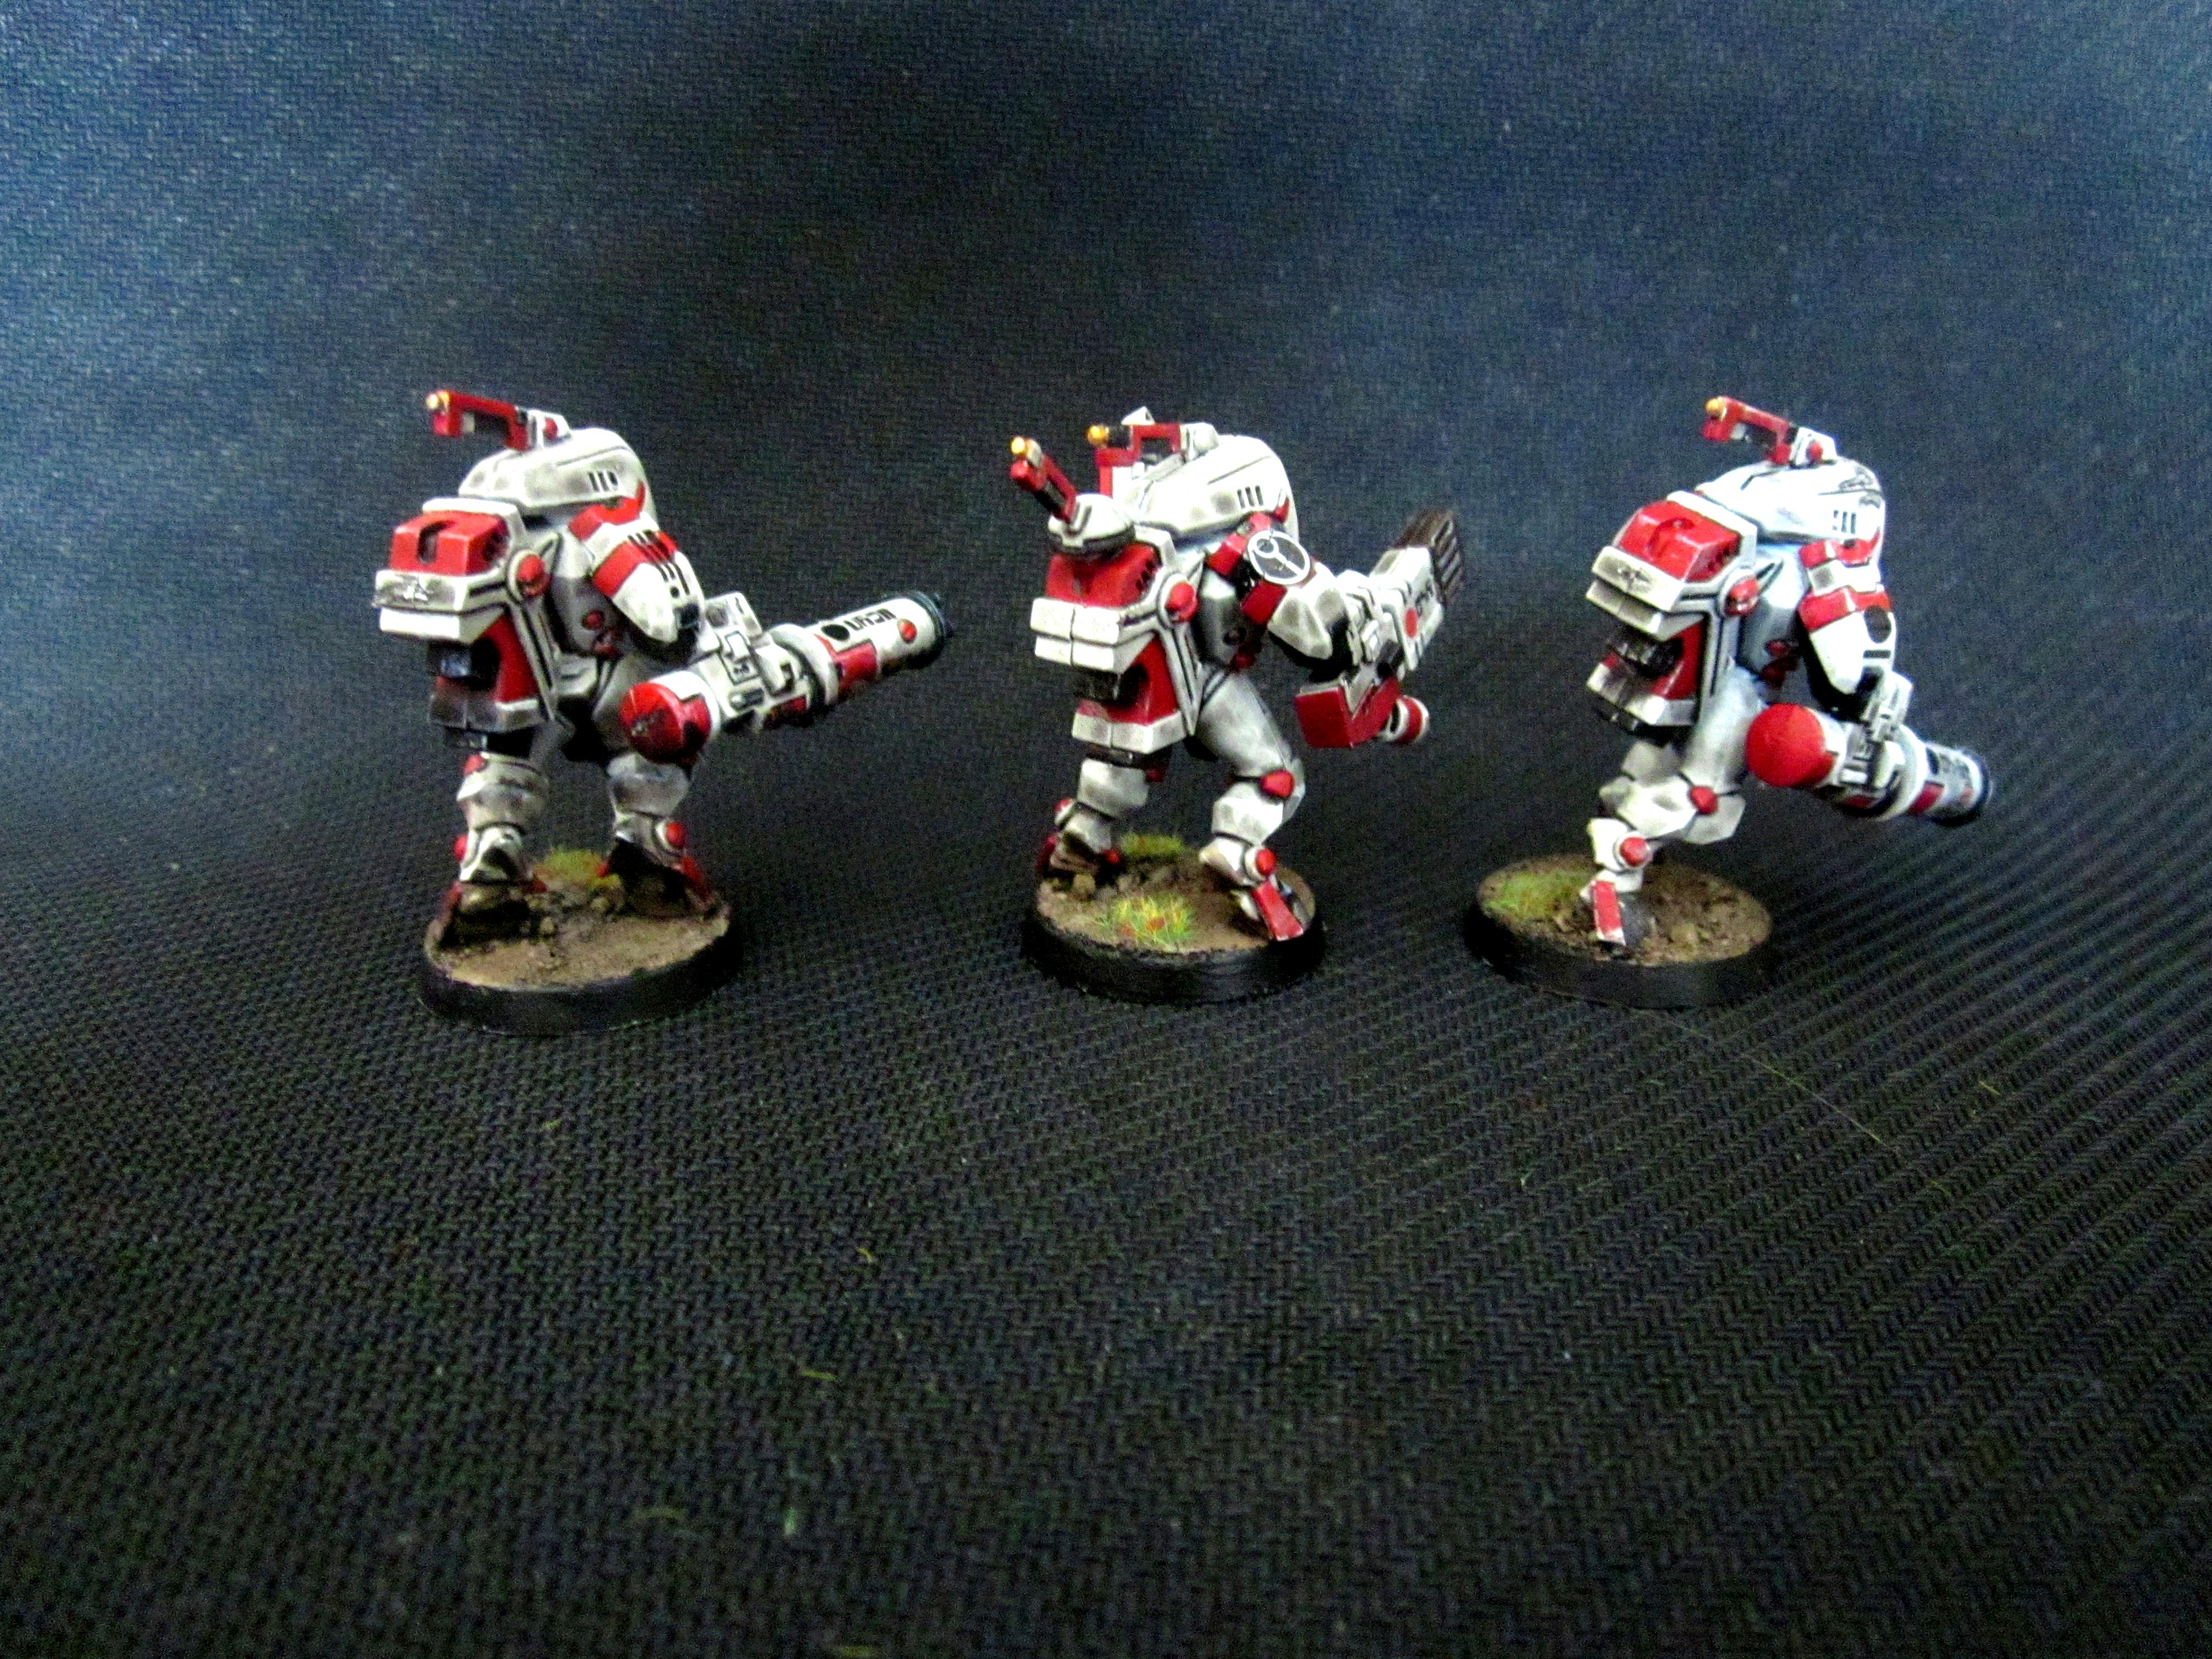 Black, Mud, Object Source Lighting, Red, Stealth, Suit, Tau, Weathered, White